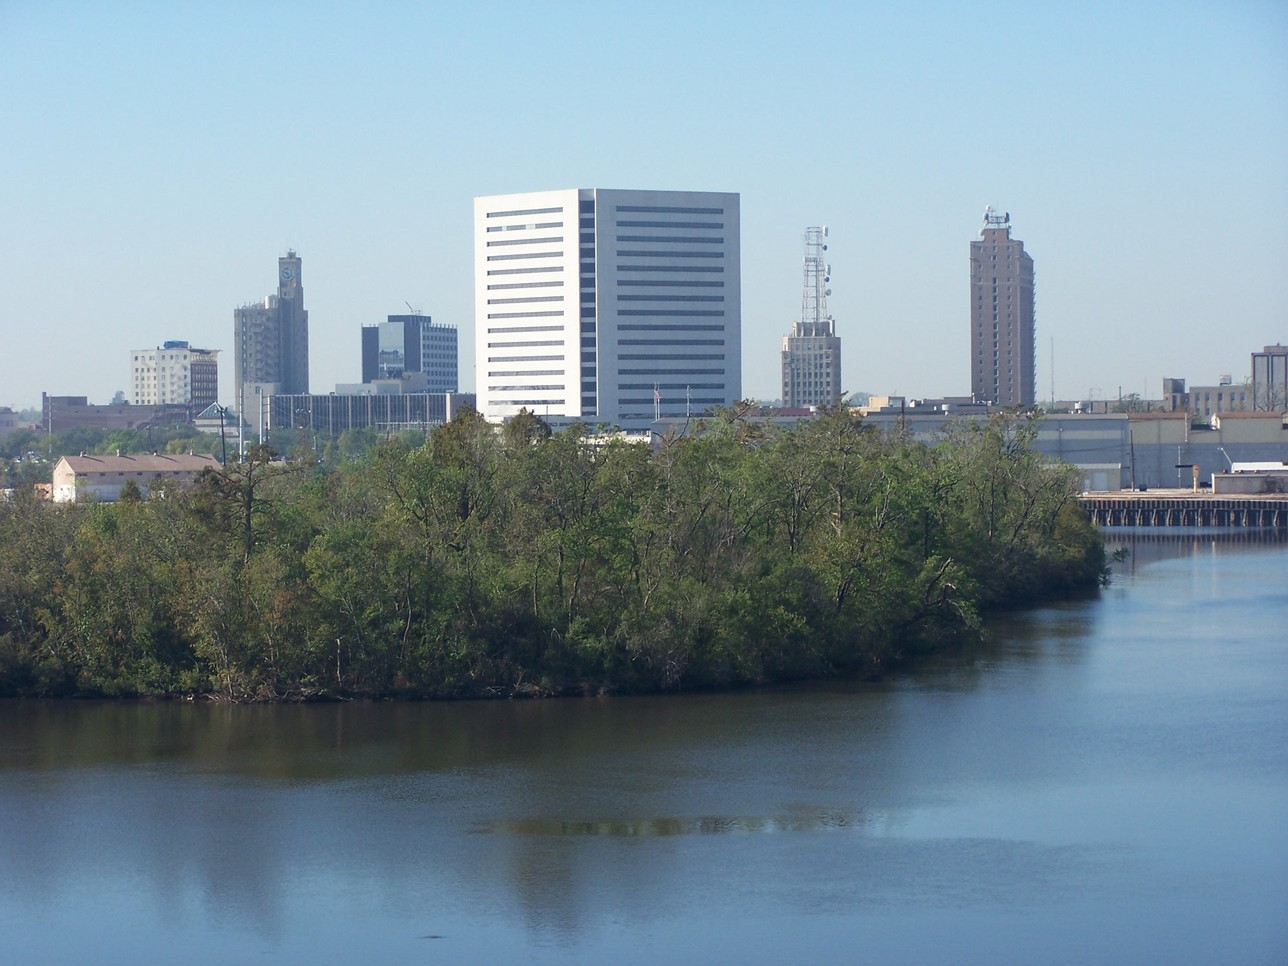 Certified nurse assistant cna salary in beaumont texas about beaumont texas xflitez Choice Image